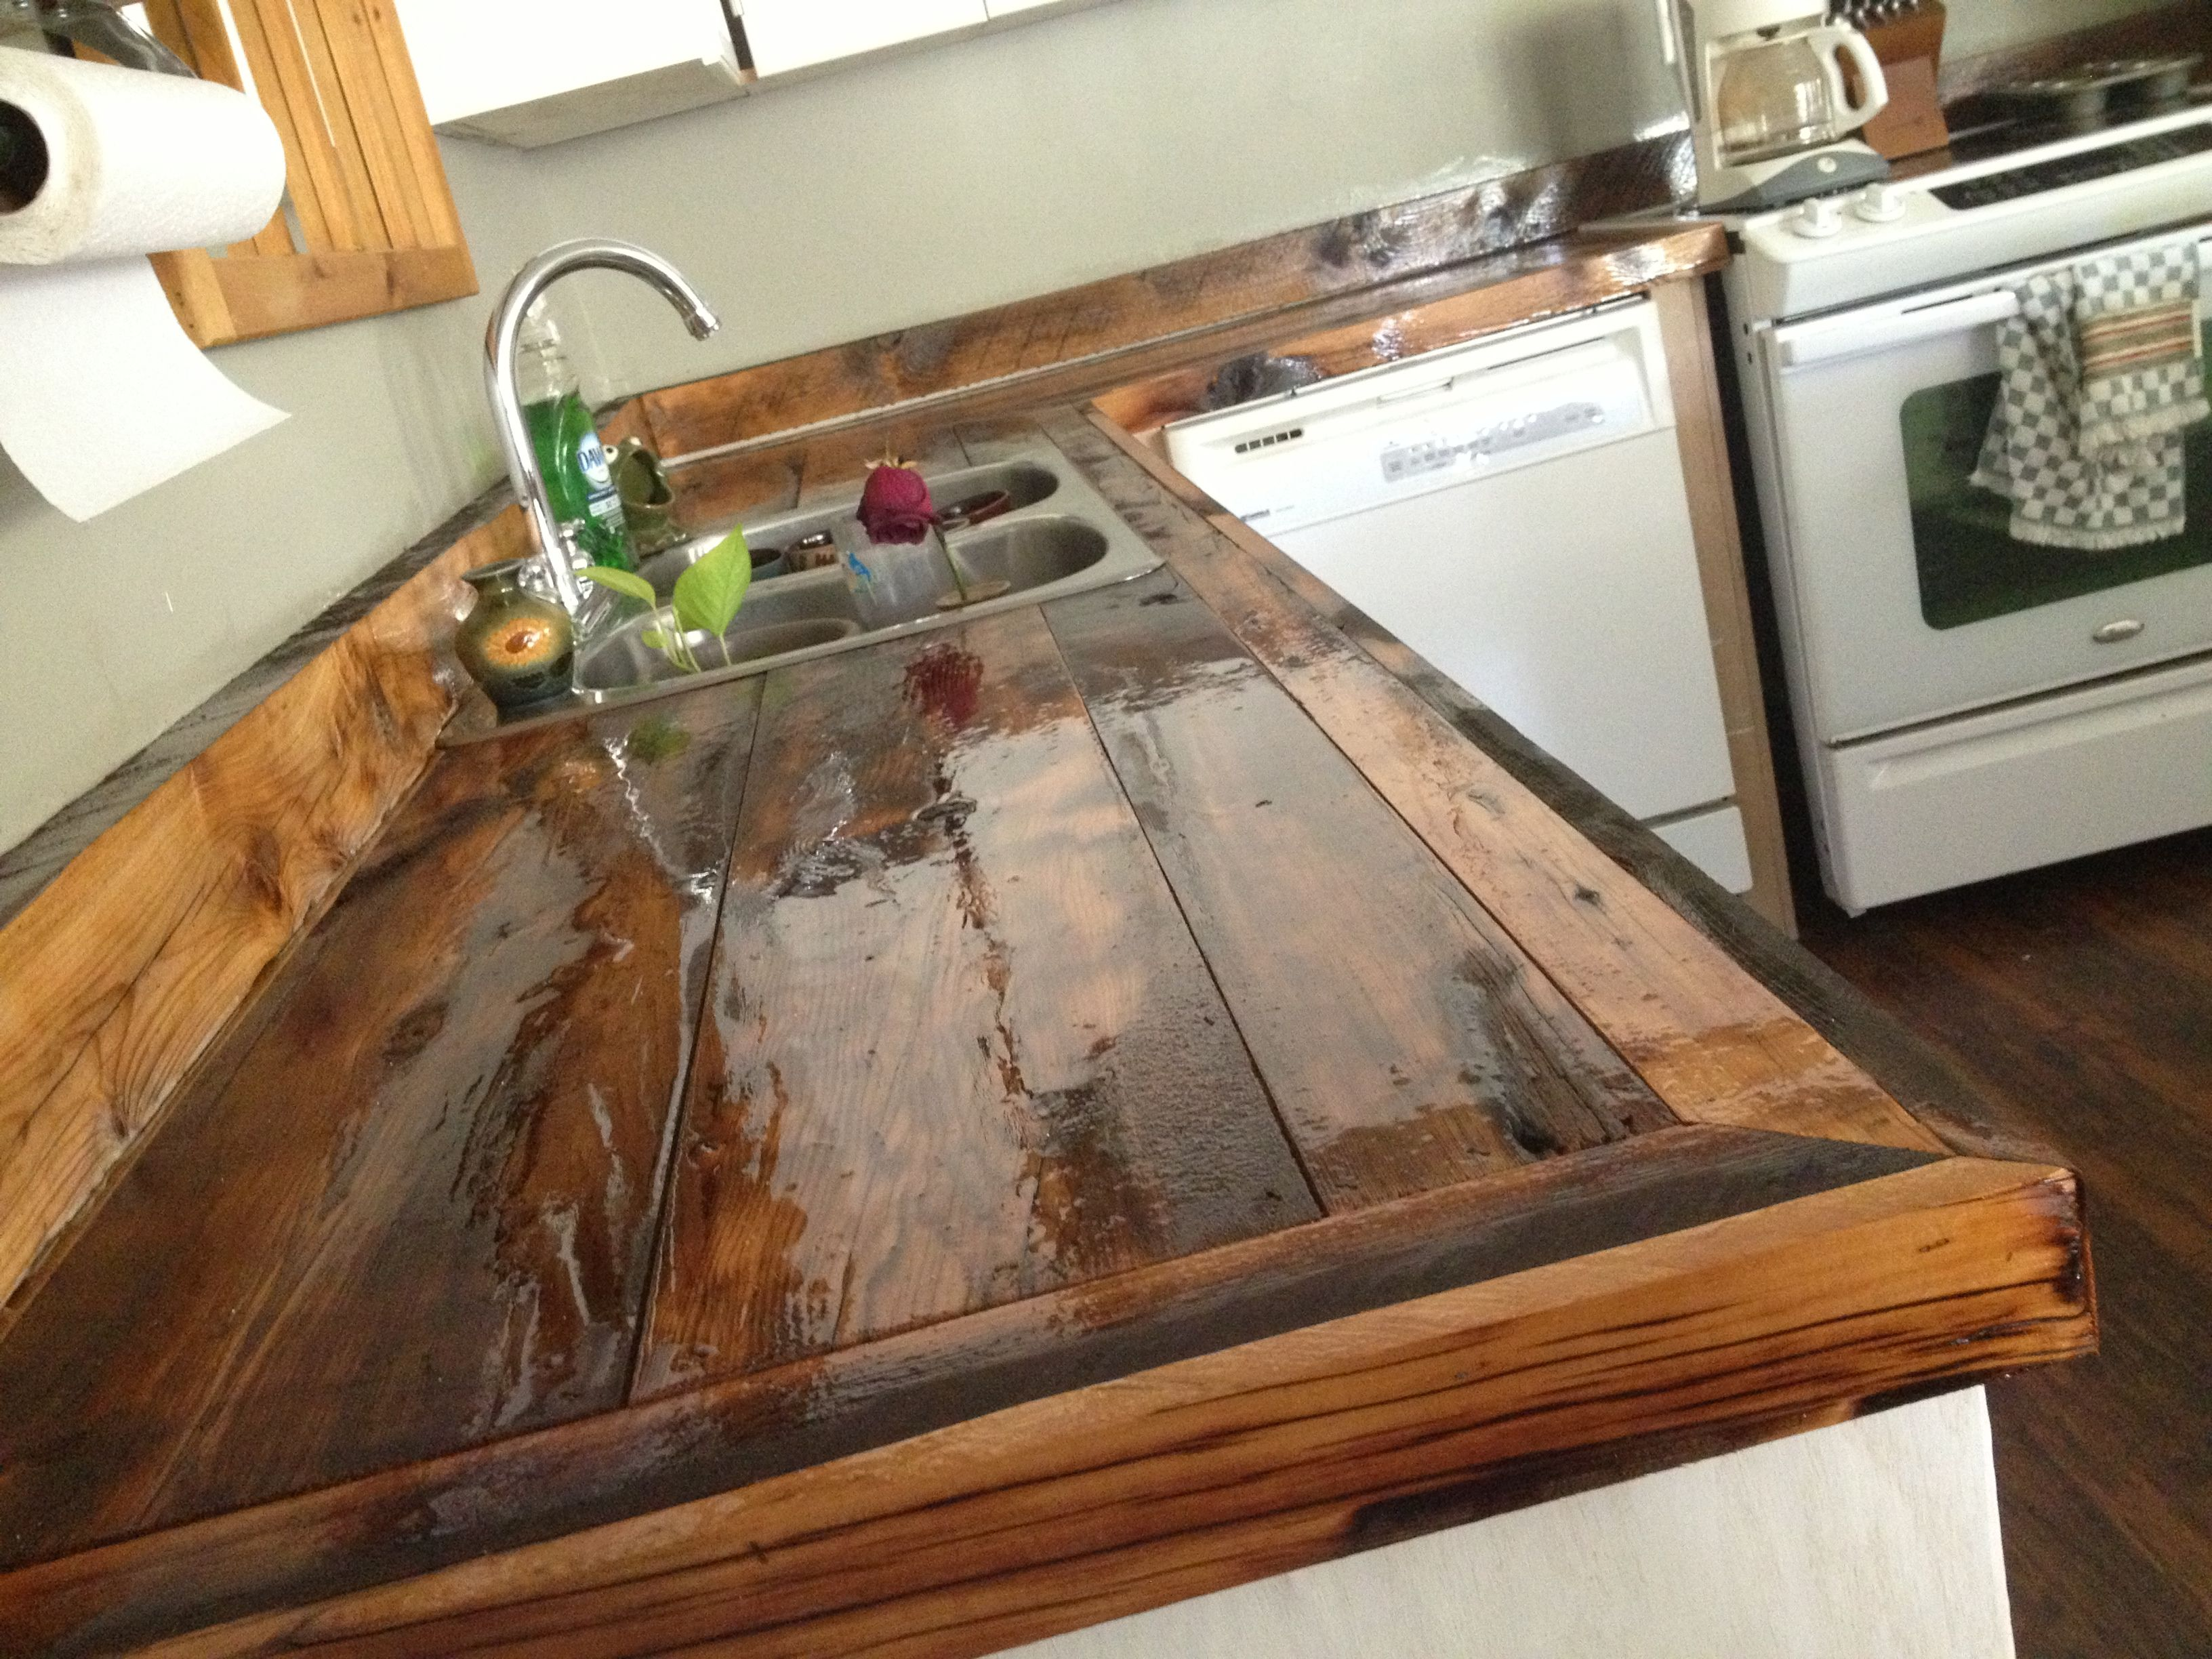 Chapter 37 Started Off Her Diy Countertop Project By Shopping For